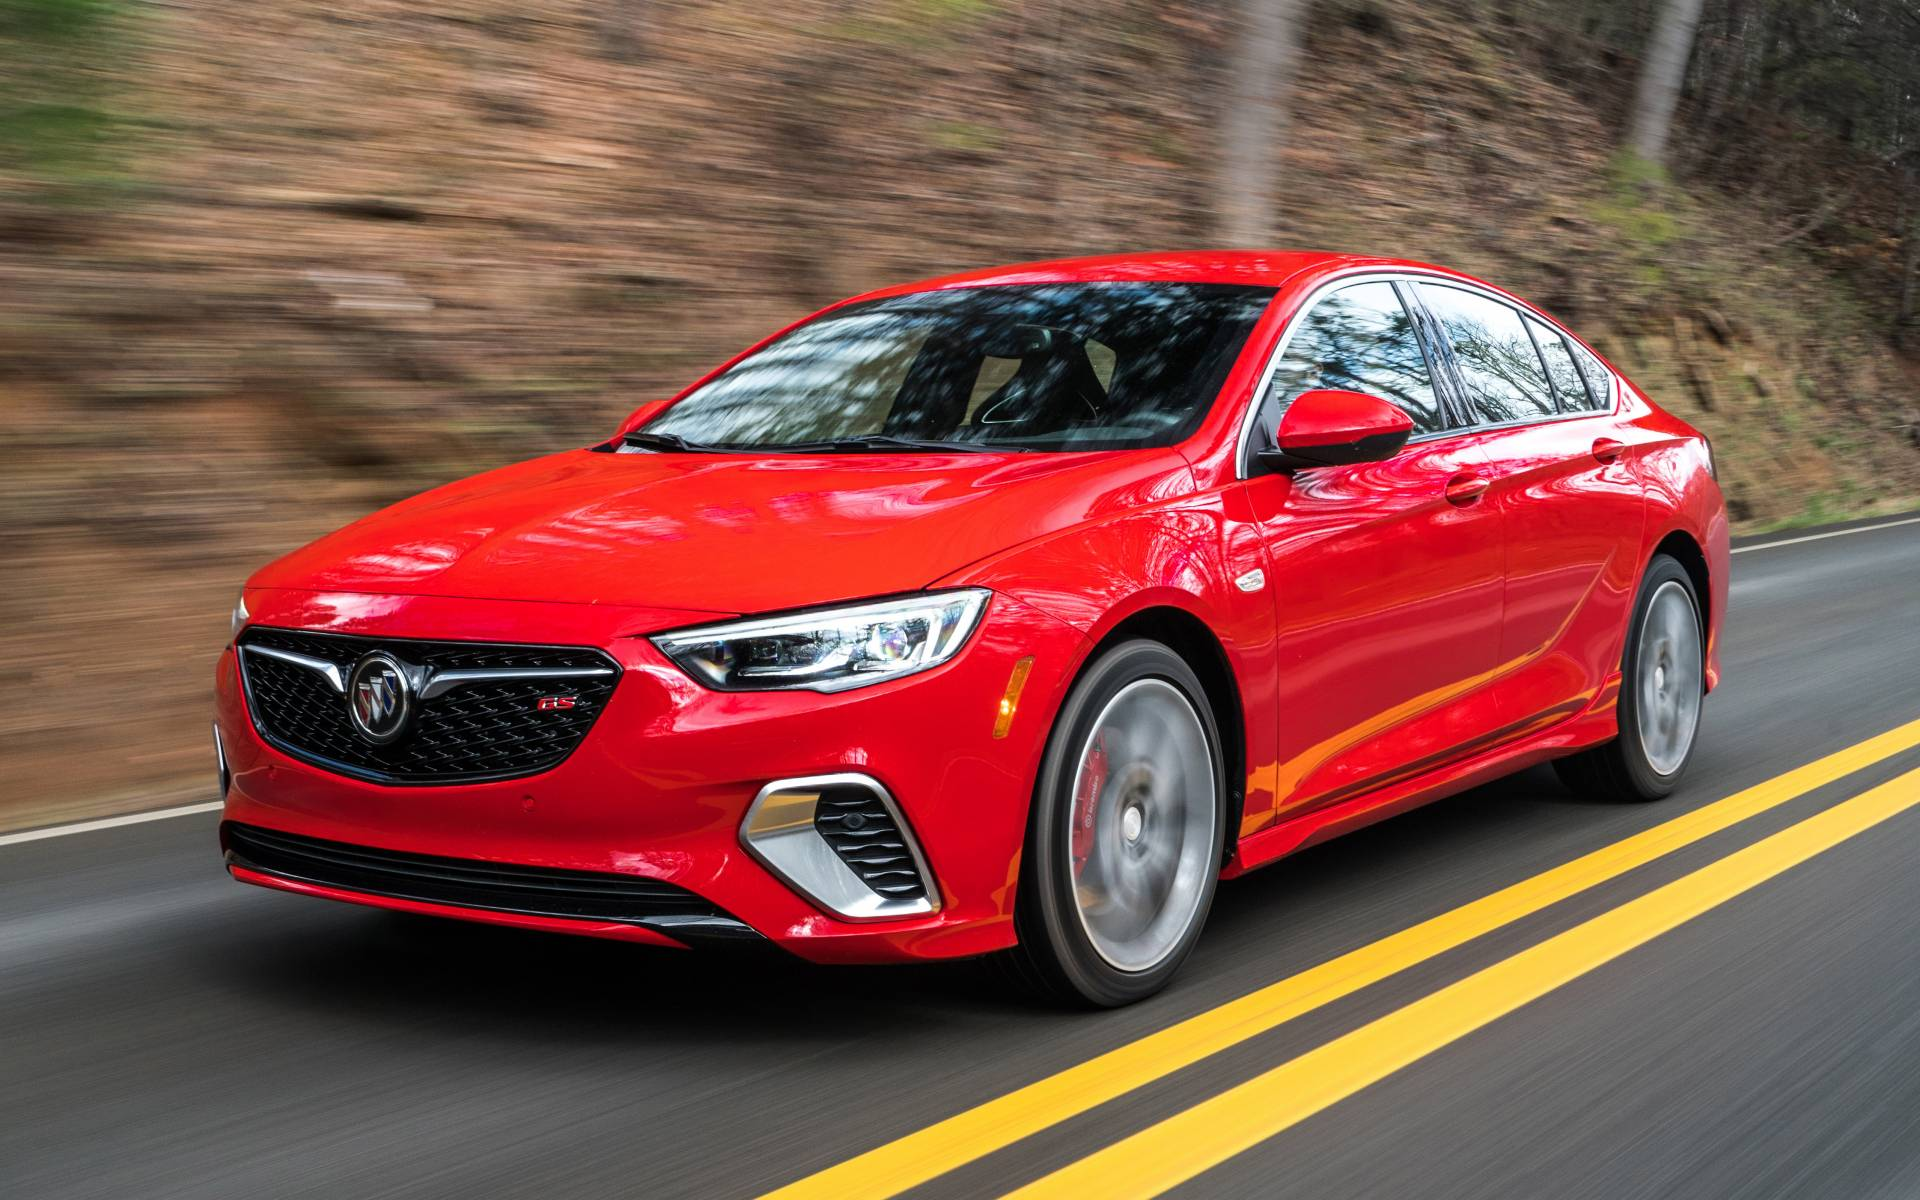 2020 Buick Regal News Reviews Picture Galleries And Videos The Car Guide